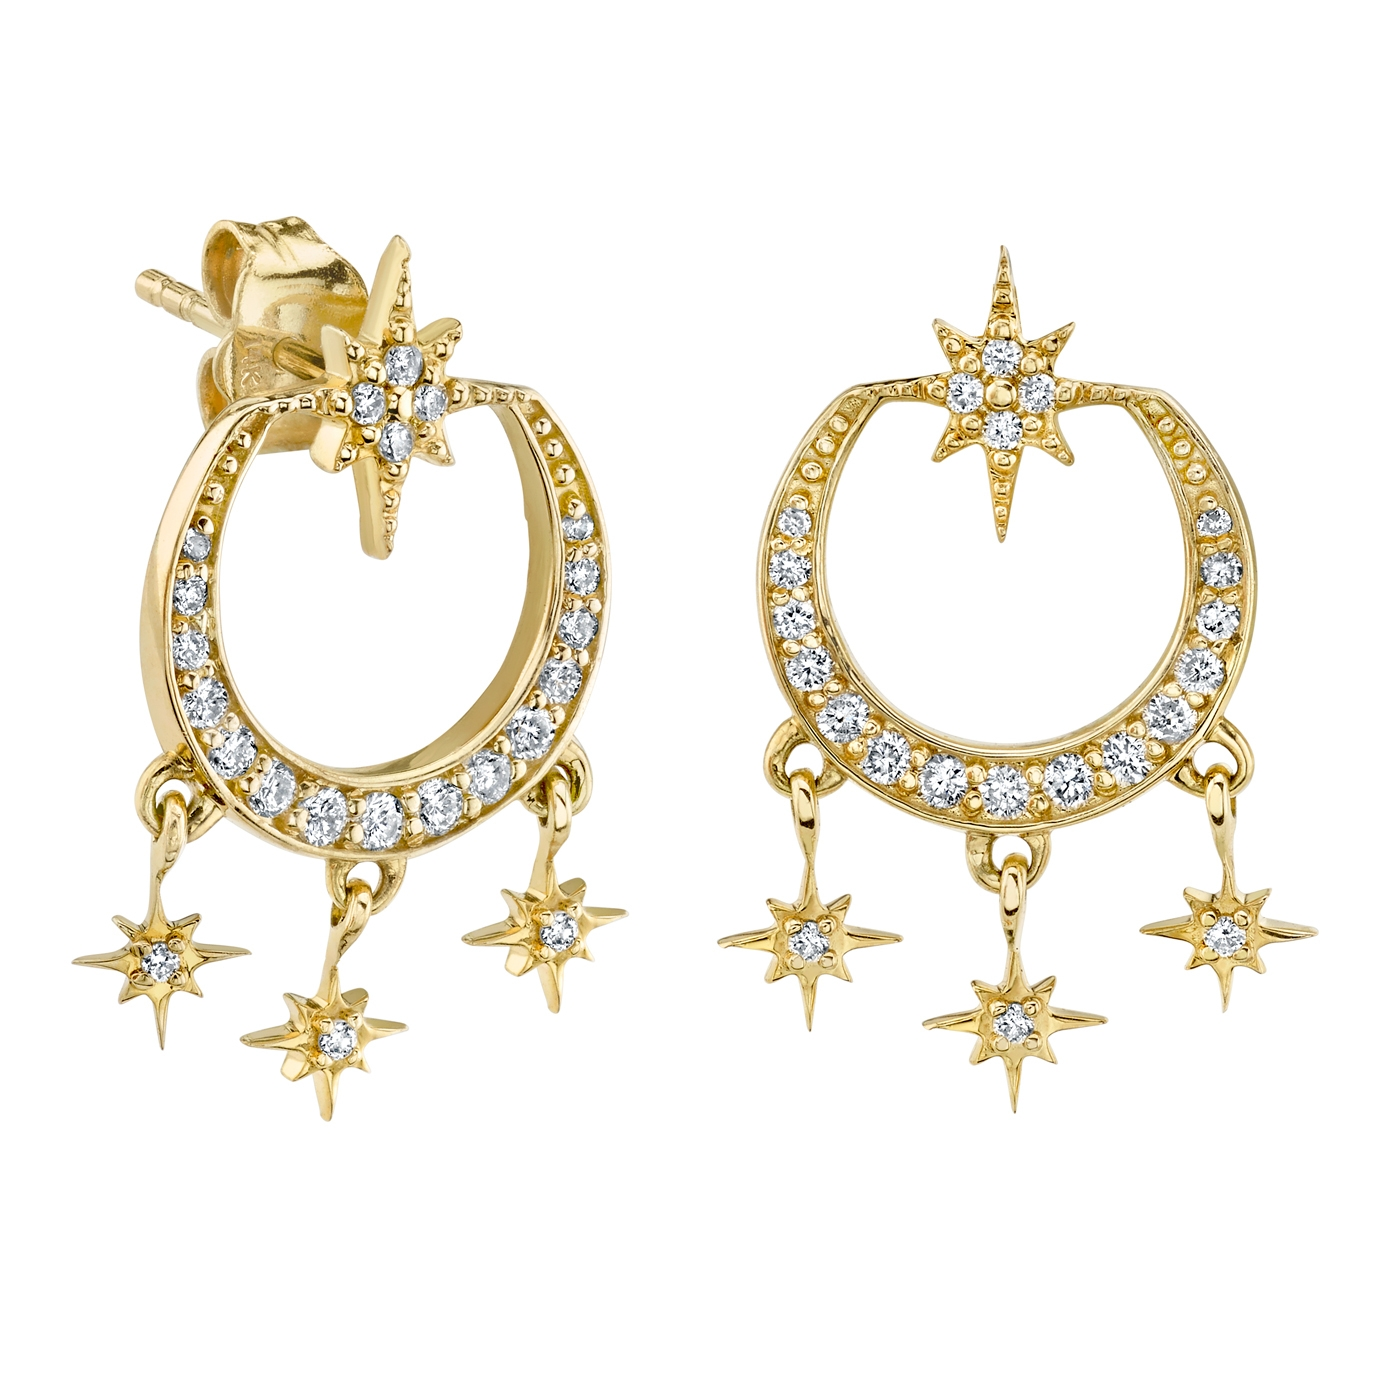 SYDNEY EVAN 14CT YELLOW GOLD AND DIAMOND STARBURST CHANDELIER EARRINGS